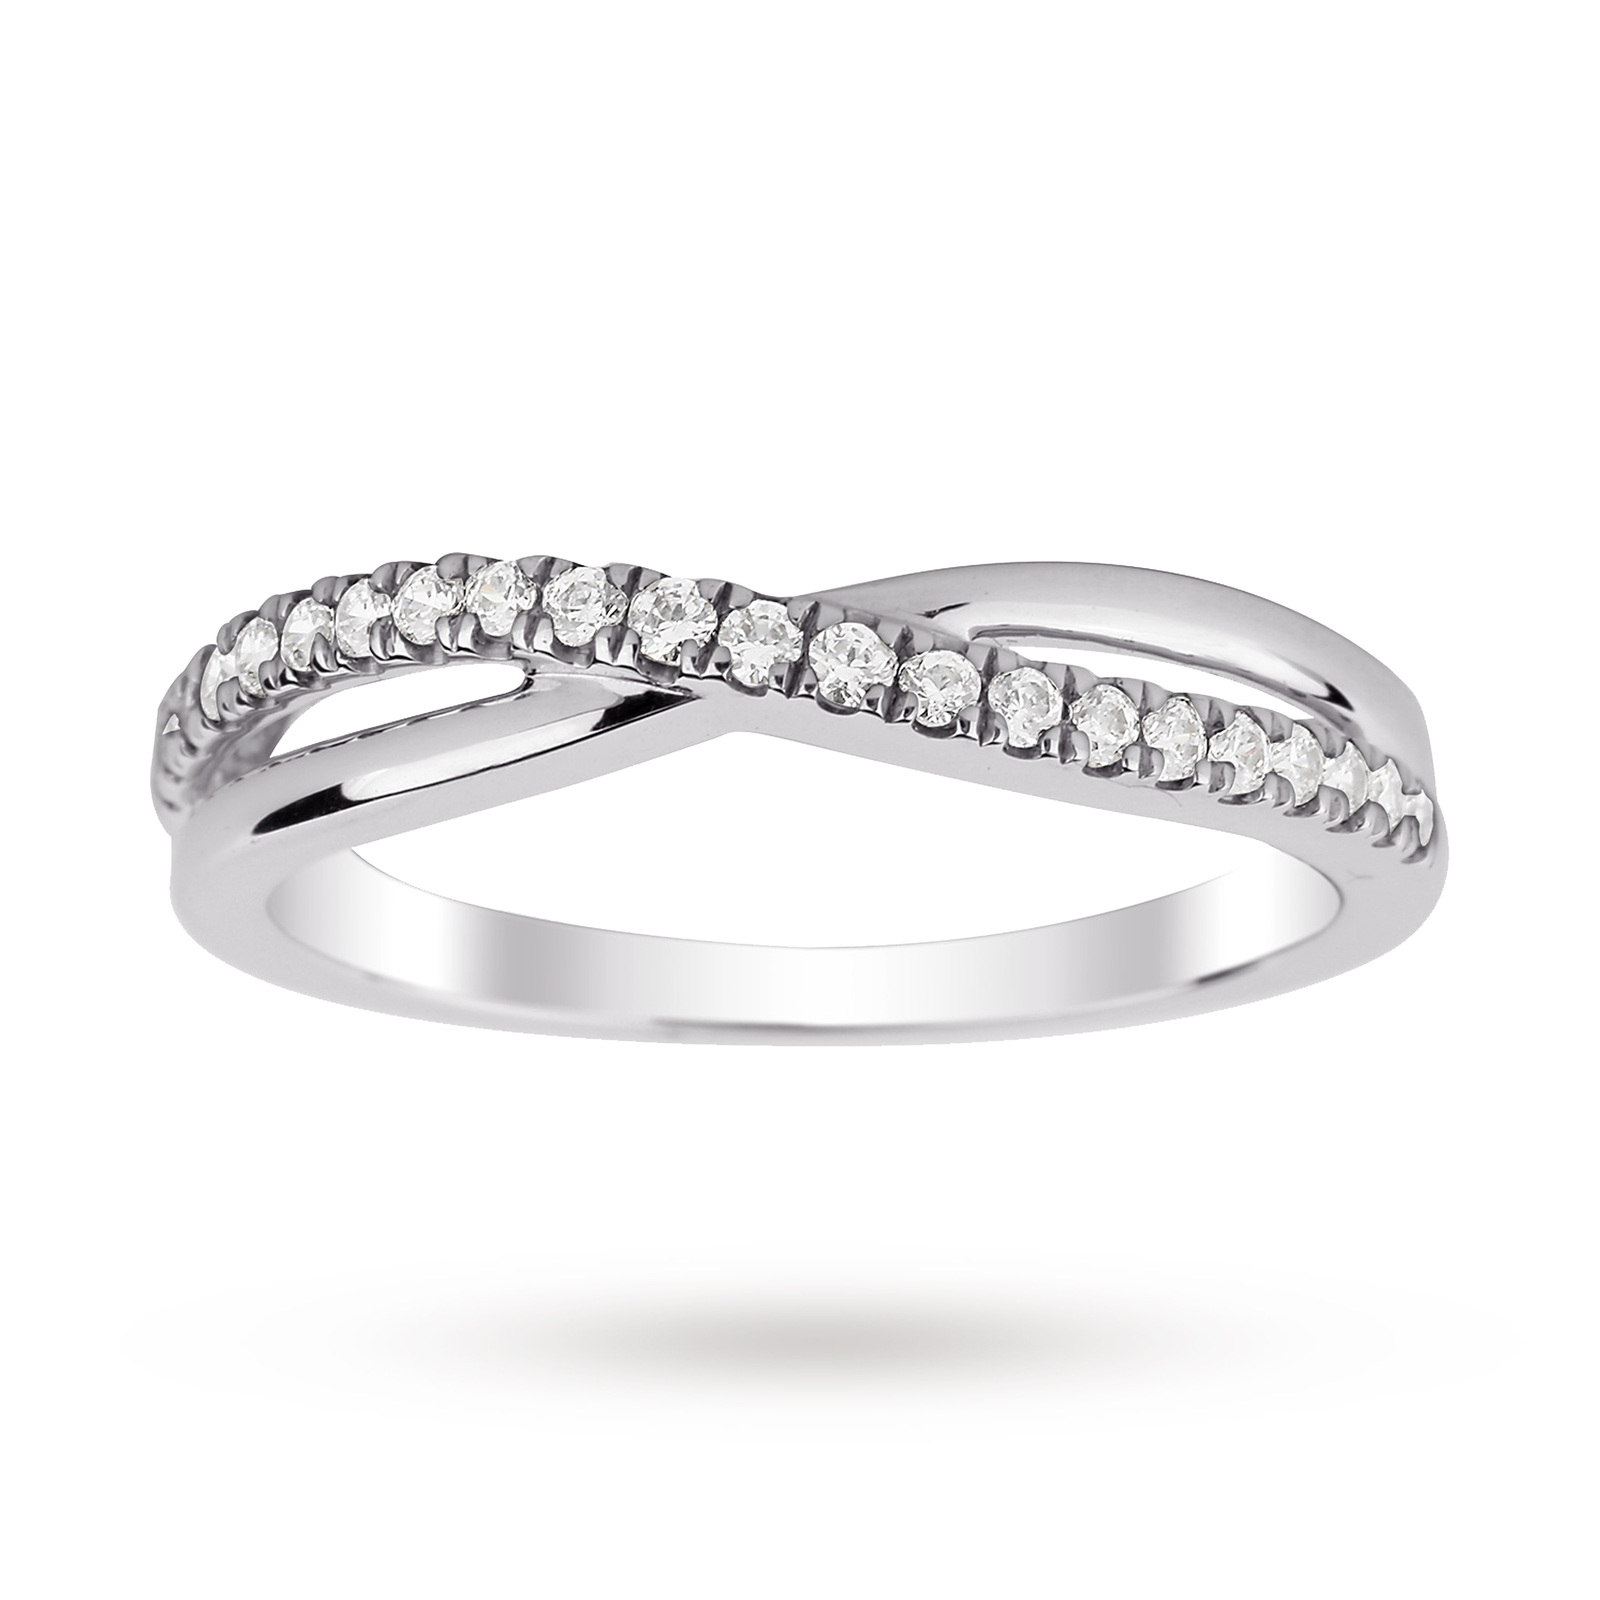 Platinum 0.25 Total Carat Weight Diamond Wedding Band